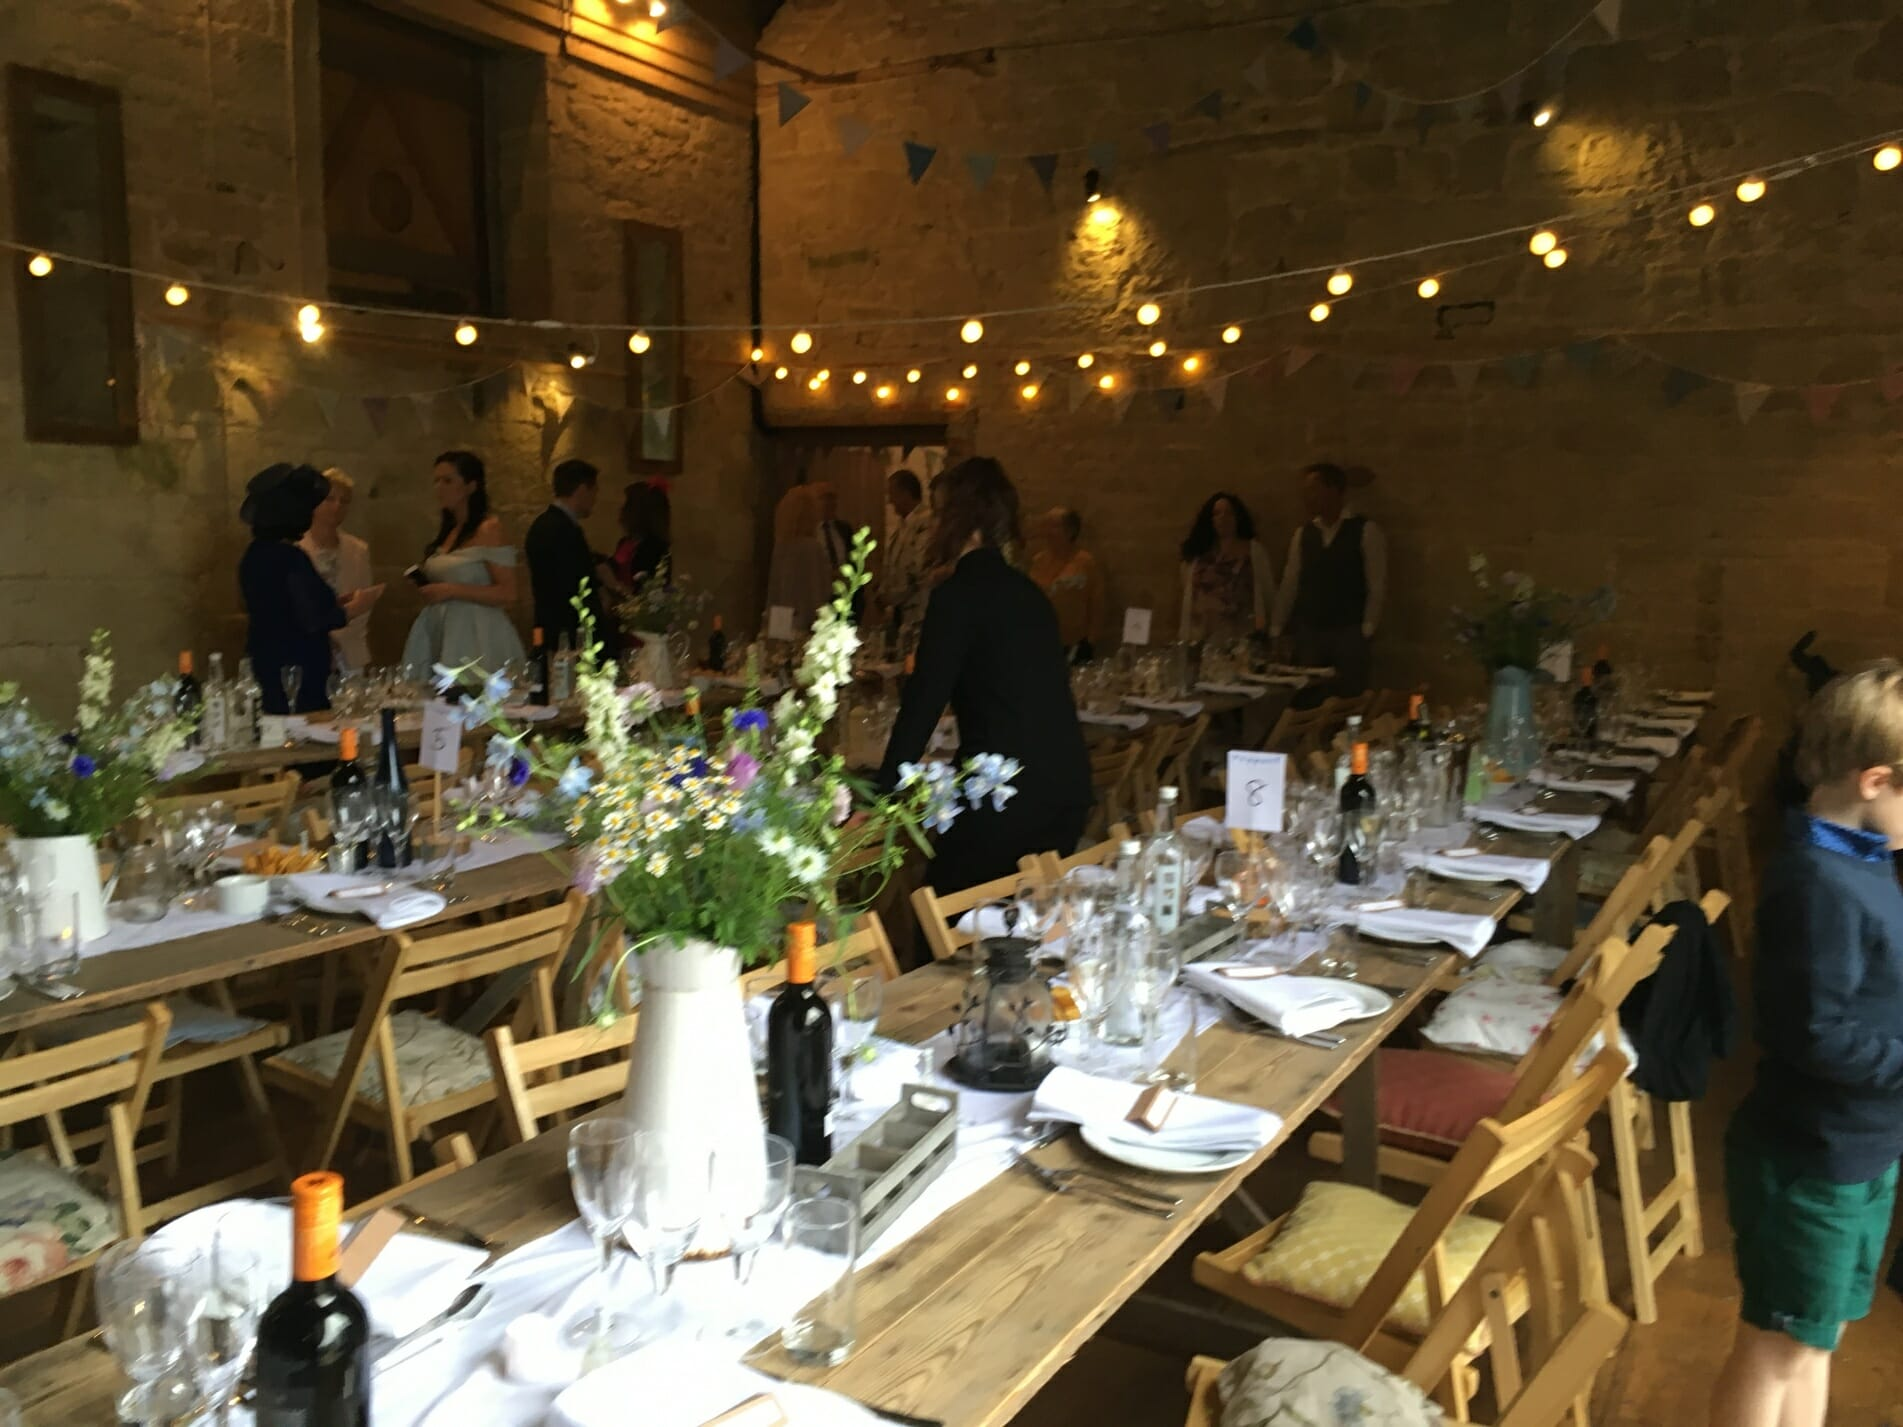 Ashley Wood Farm Wedding Venue Wilshire Barn In Wiltshire Beautiful The Zoots Band